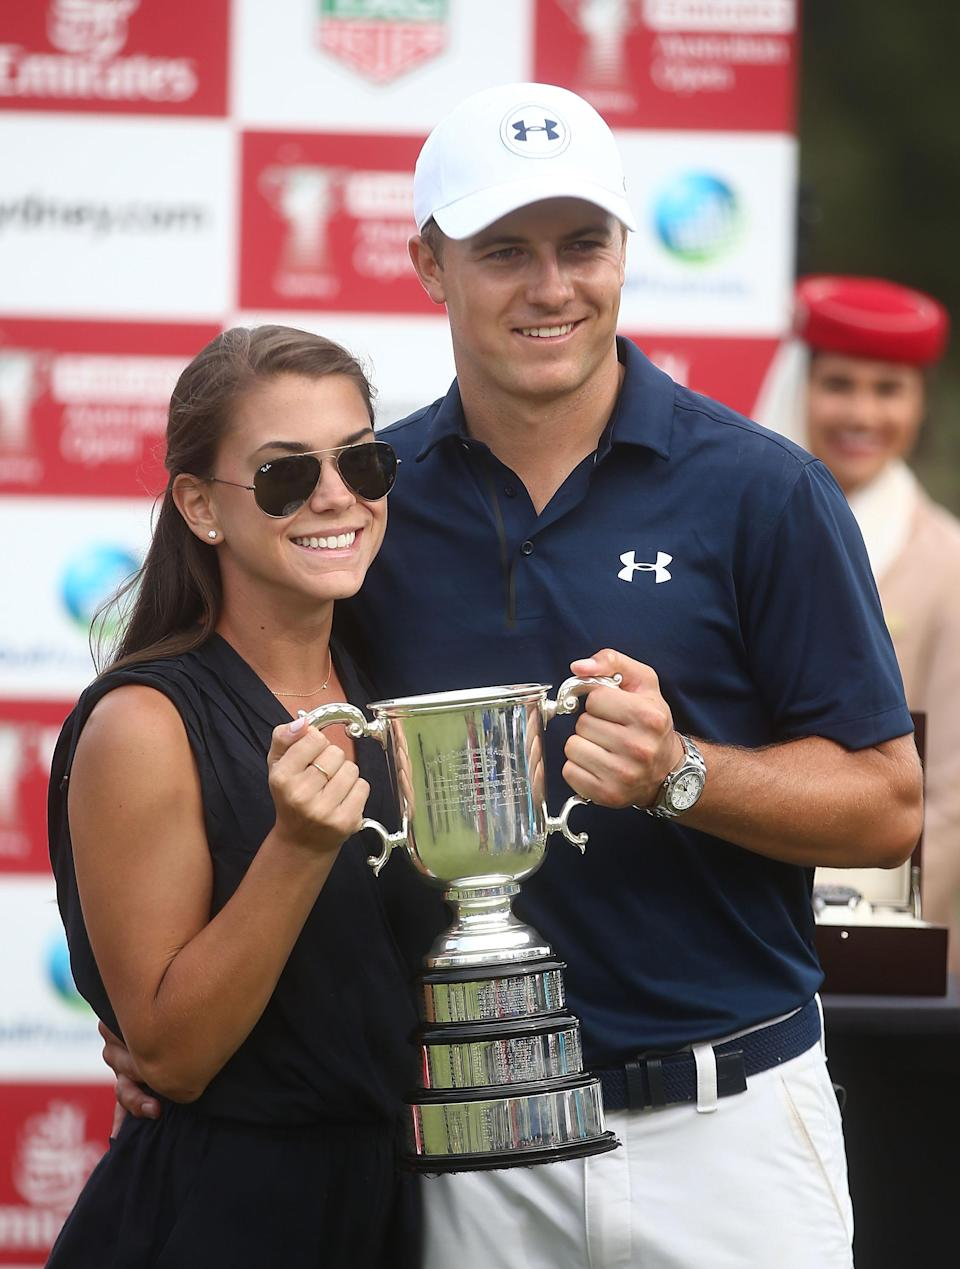 SYDNEY, AUSTRALIA - NOVEMBER 20: Jordan Spieth of the United States and girlfriend Annie Verret pose with the Stonehaven trophy after winning the 2016 Australian Open during day four of the 2016 Australian golf Open at Royal Sydney Golf Club on November 20, 2016 in Sydney, Australia. (Photo by Mark Metcalfe/Getty Images)